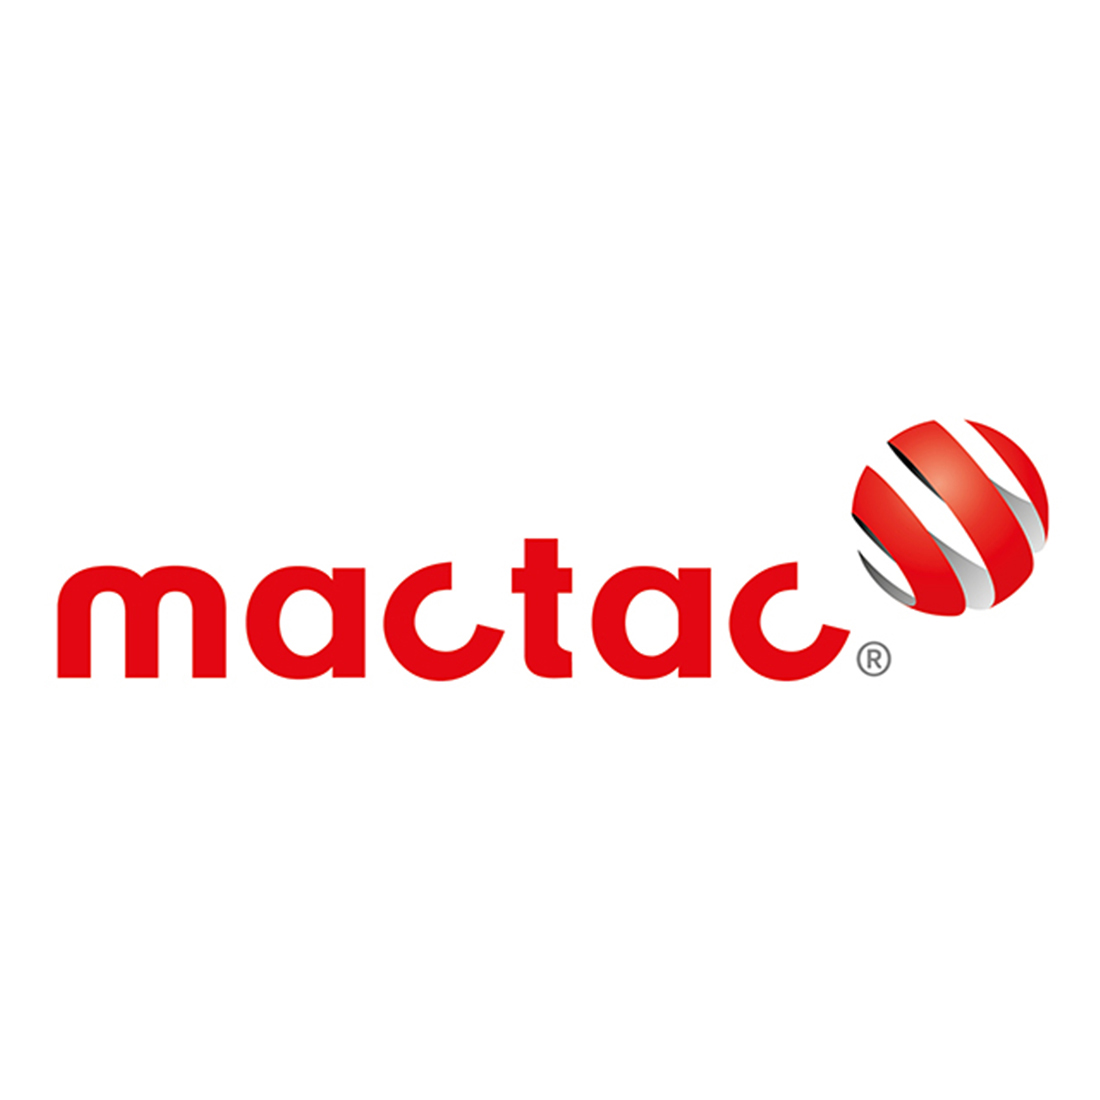 Mactac IMAGin Digitaldruck-Medien